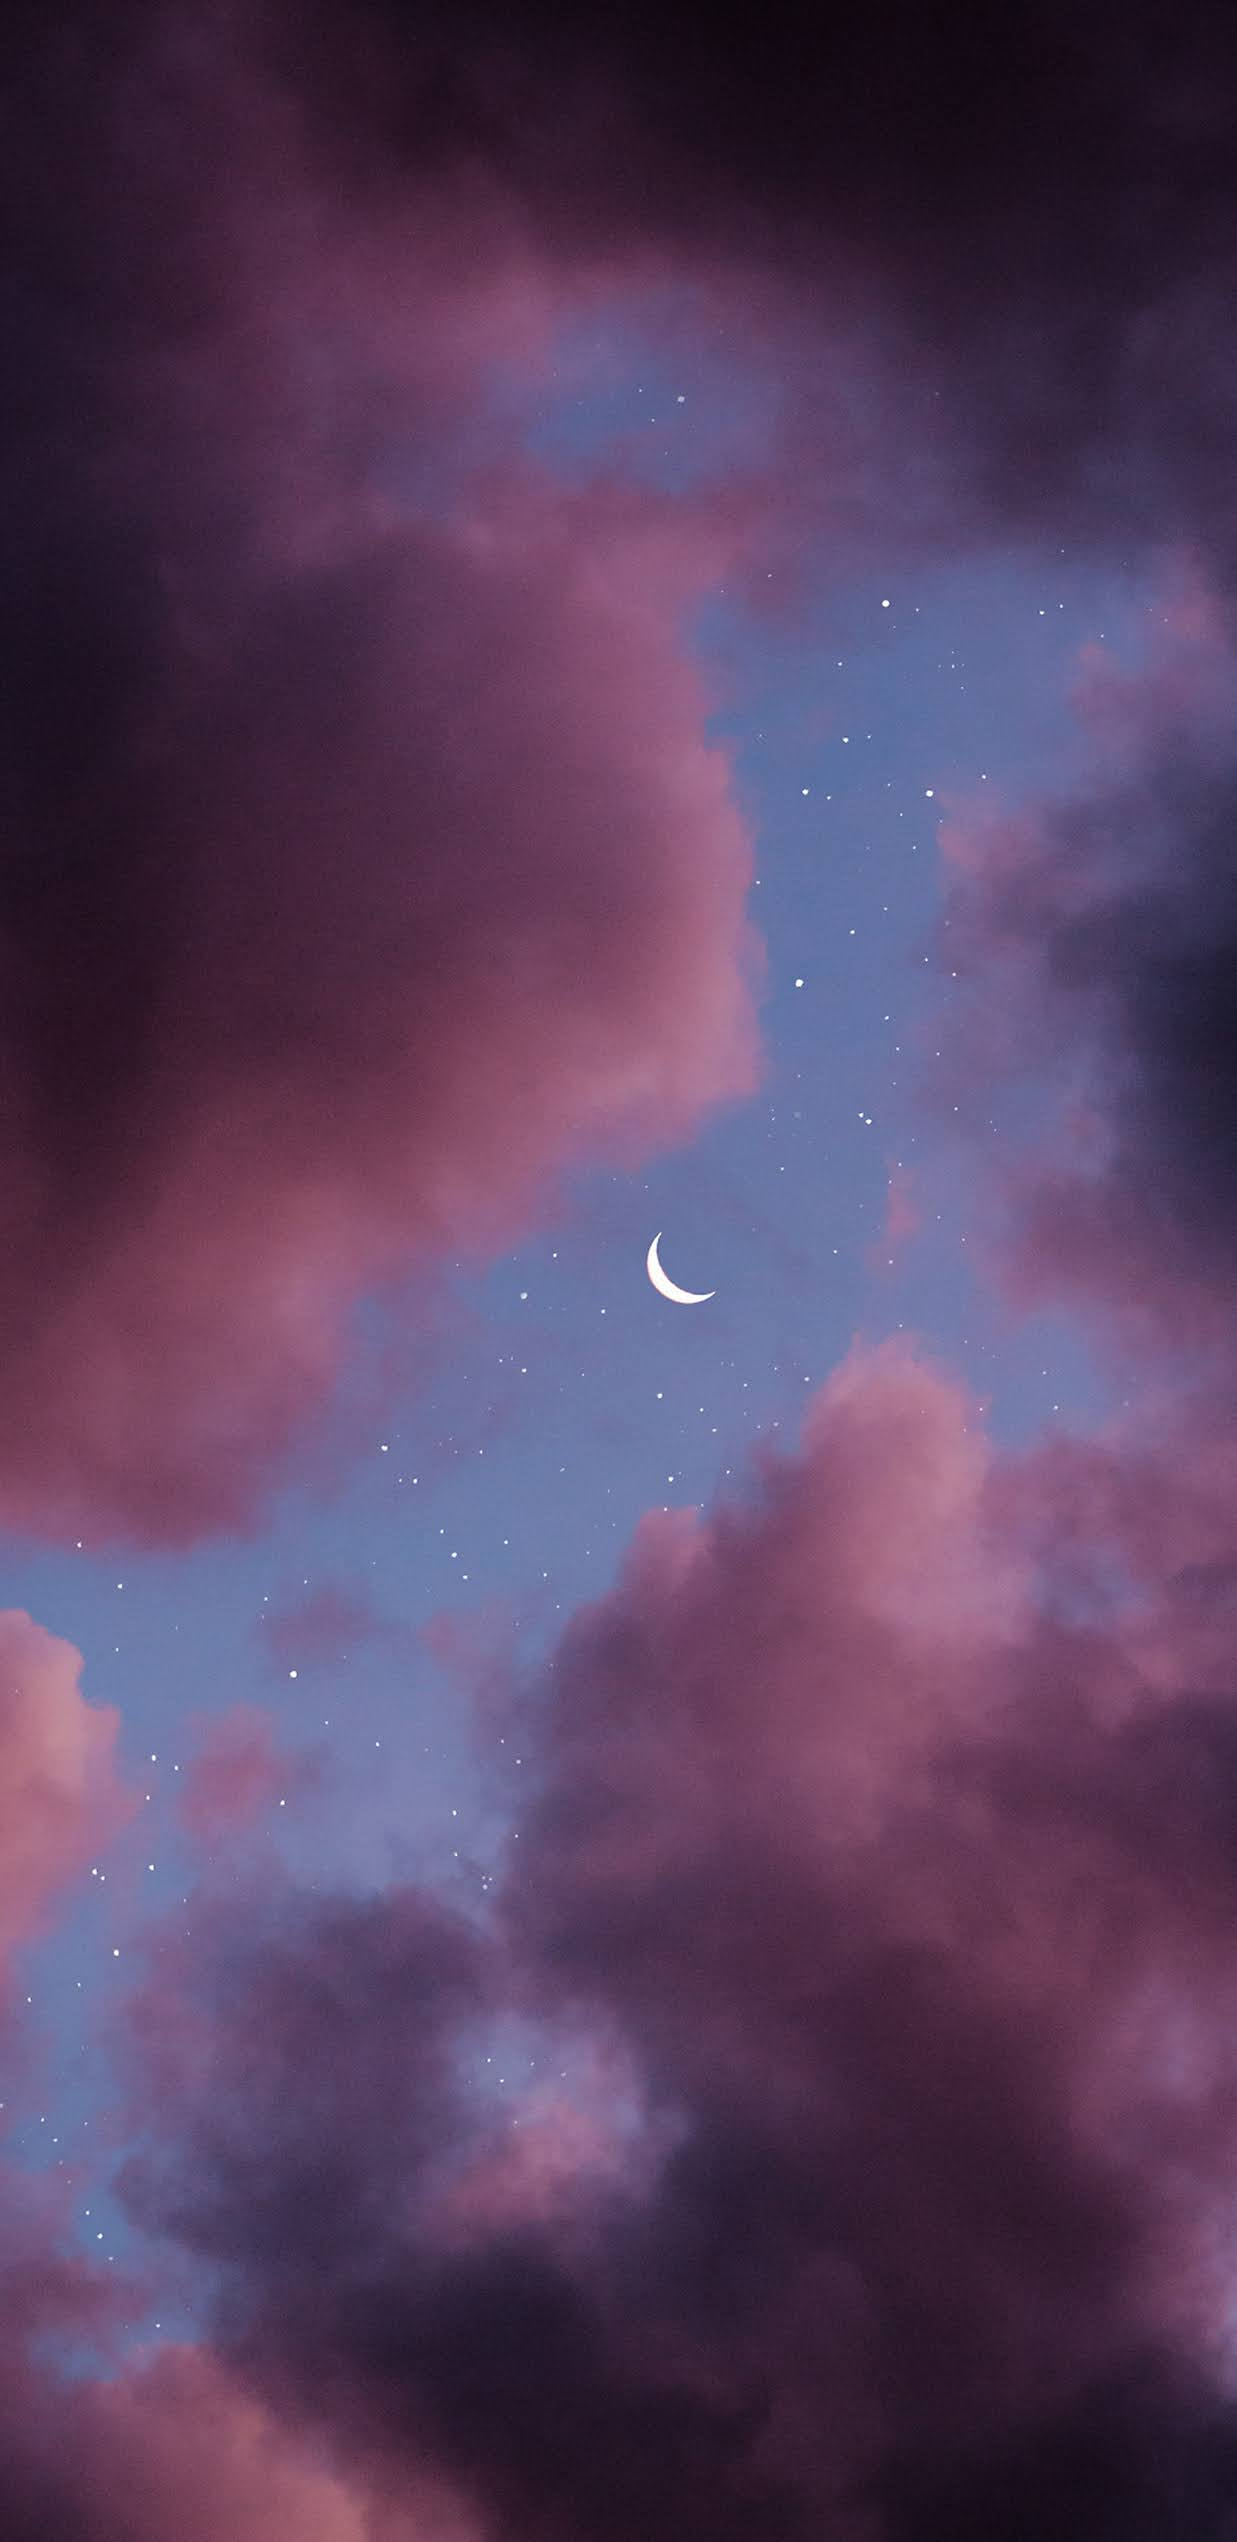 Creasent moon in the pink sky